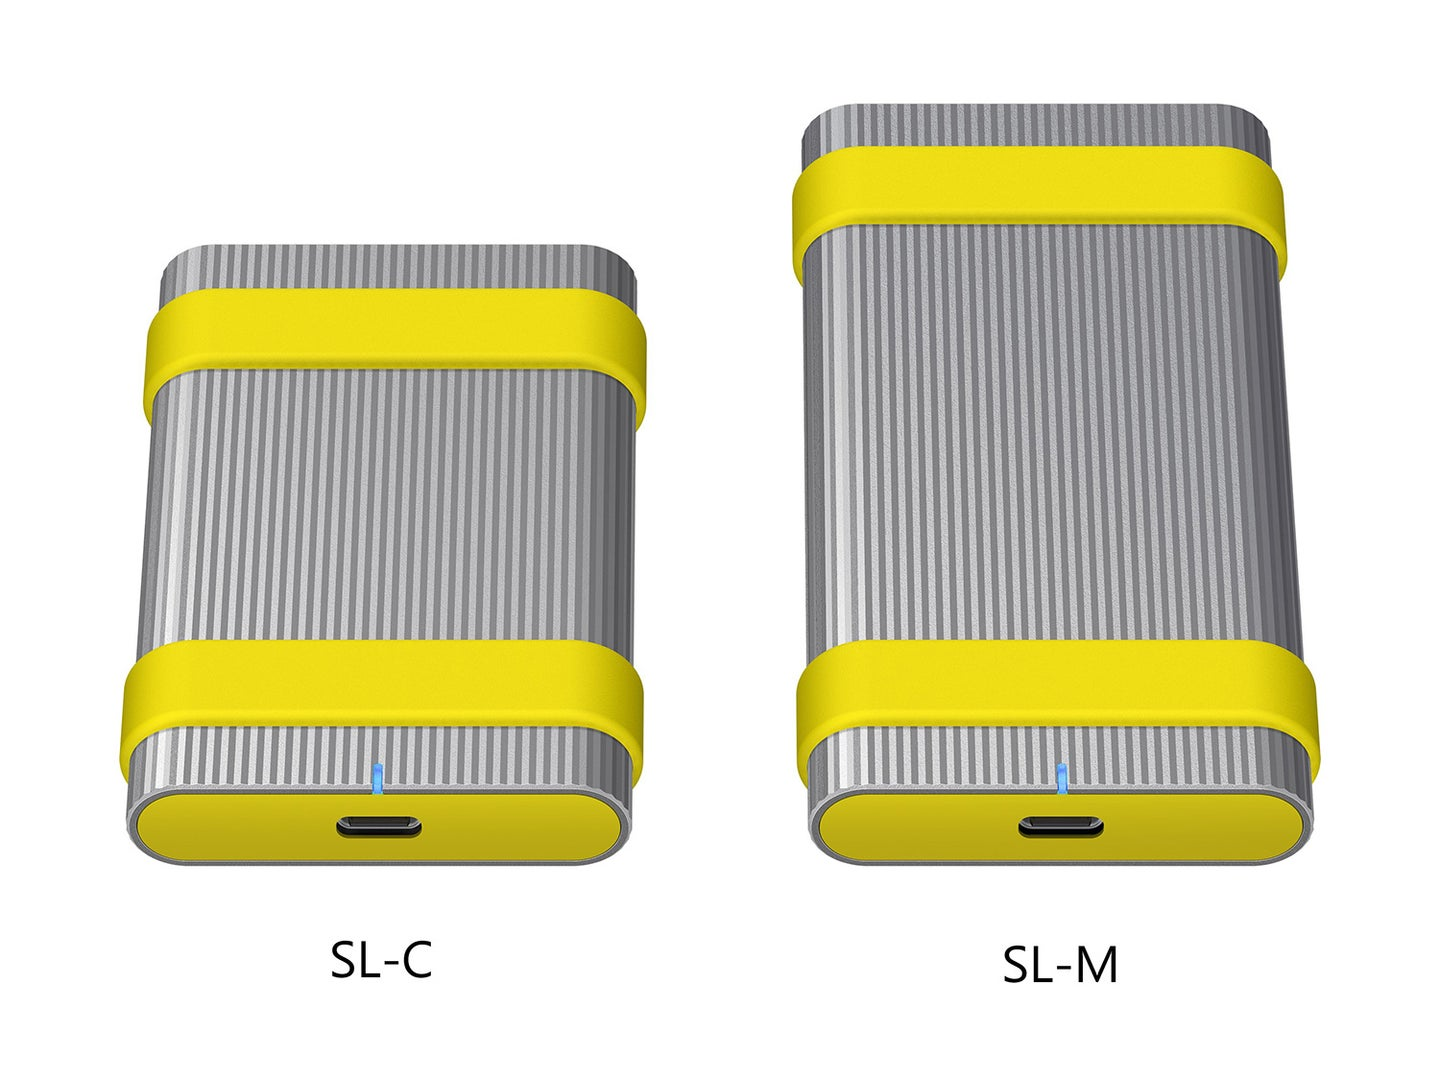 Sony's new high-speed external SSD drives are built for abuse